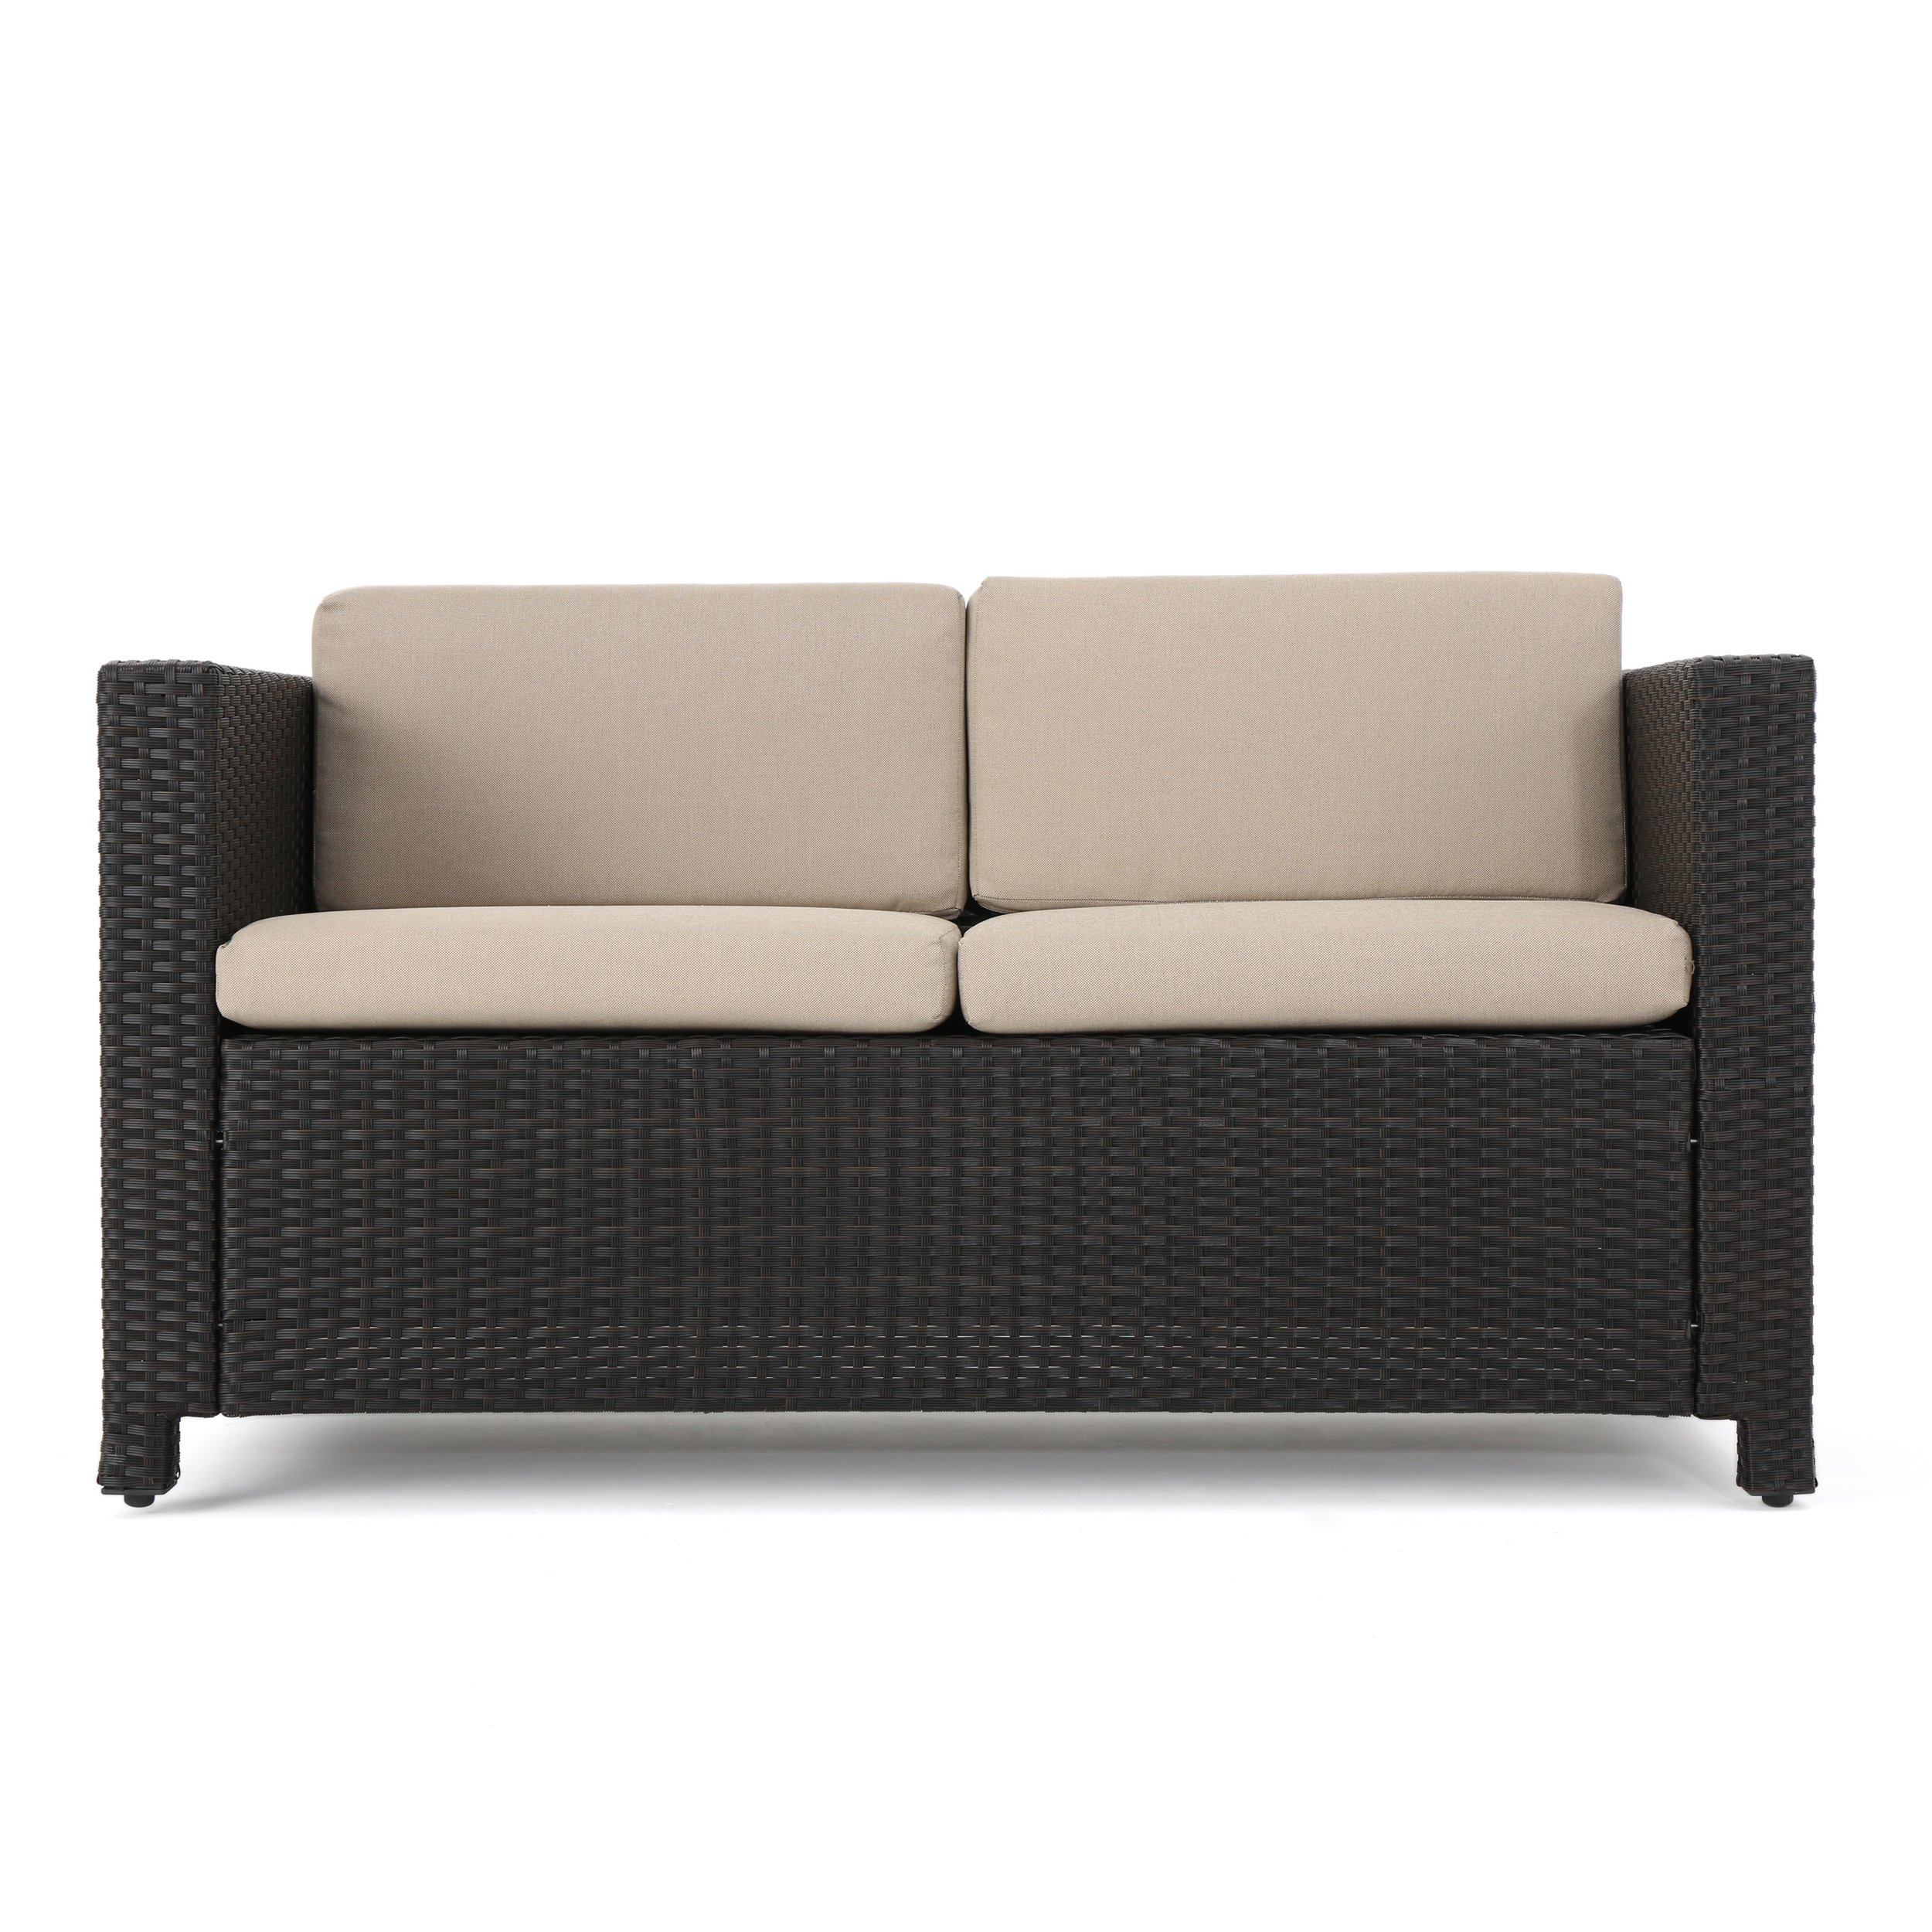 Great Deal Furniture Lorelei Outdoor Wicker Loveseat with Cushions, Brown and Ceramic Grey